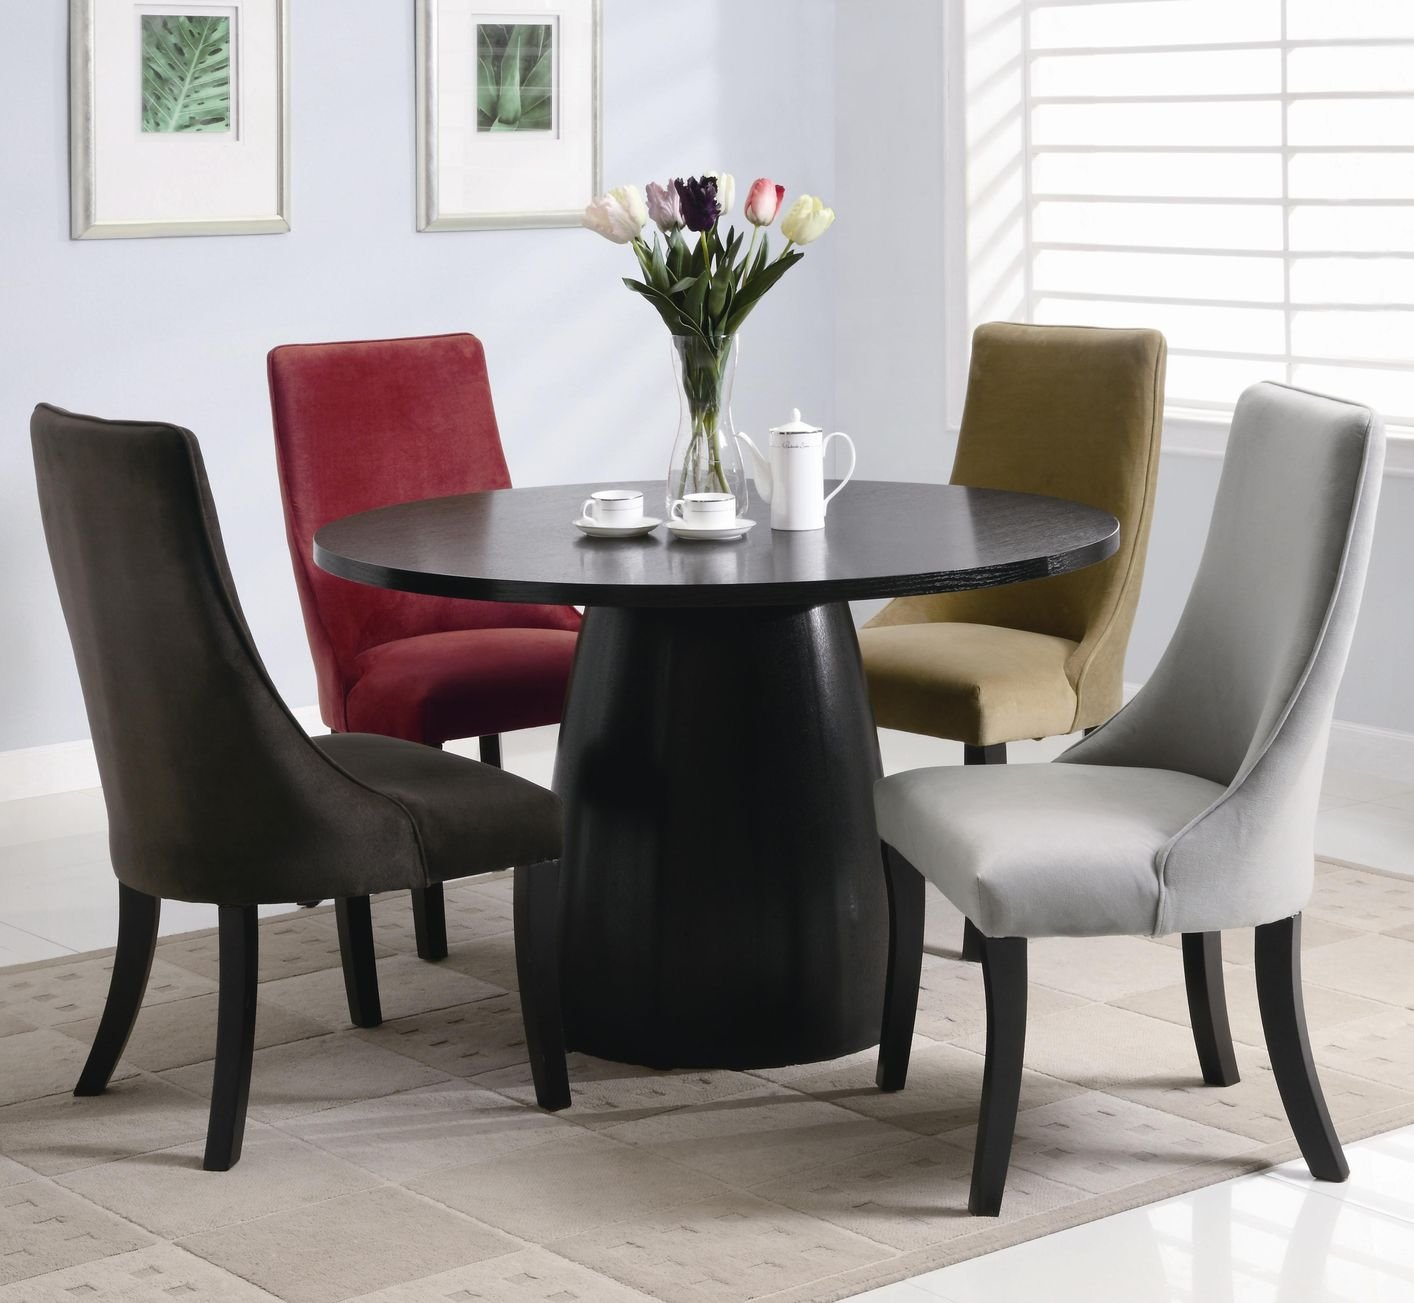 Amhurst Black Satin Wood Dining Table StealASofa Furniture - Kitchen table los angeles